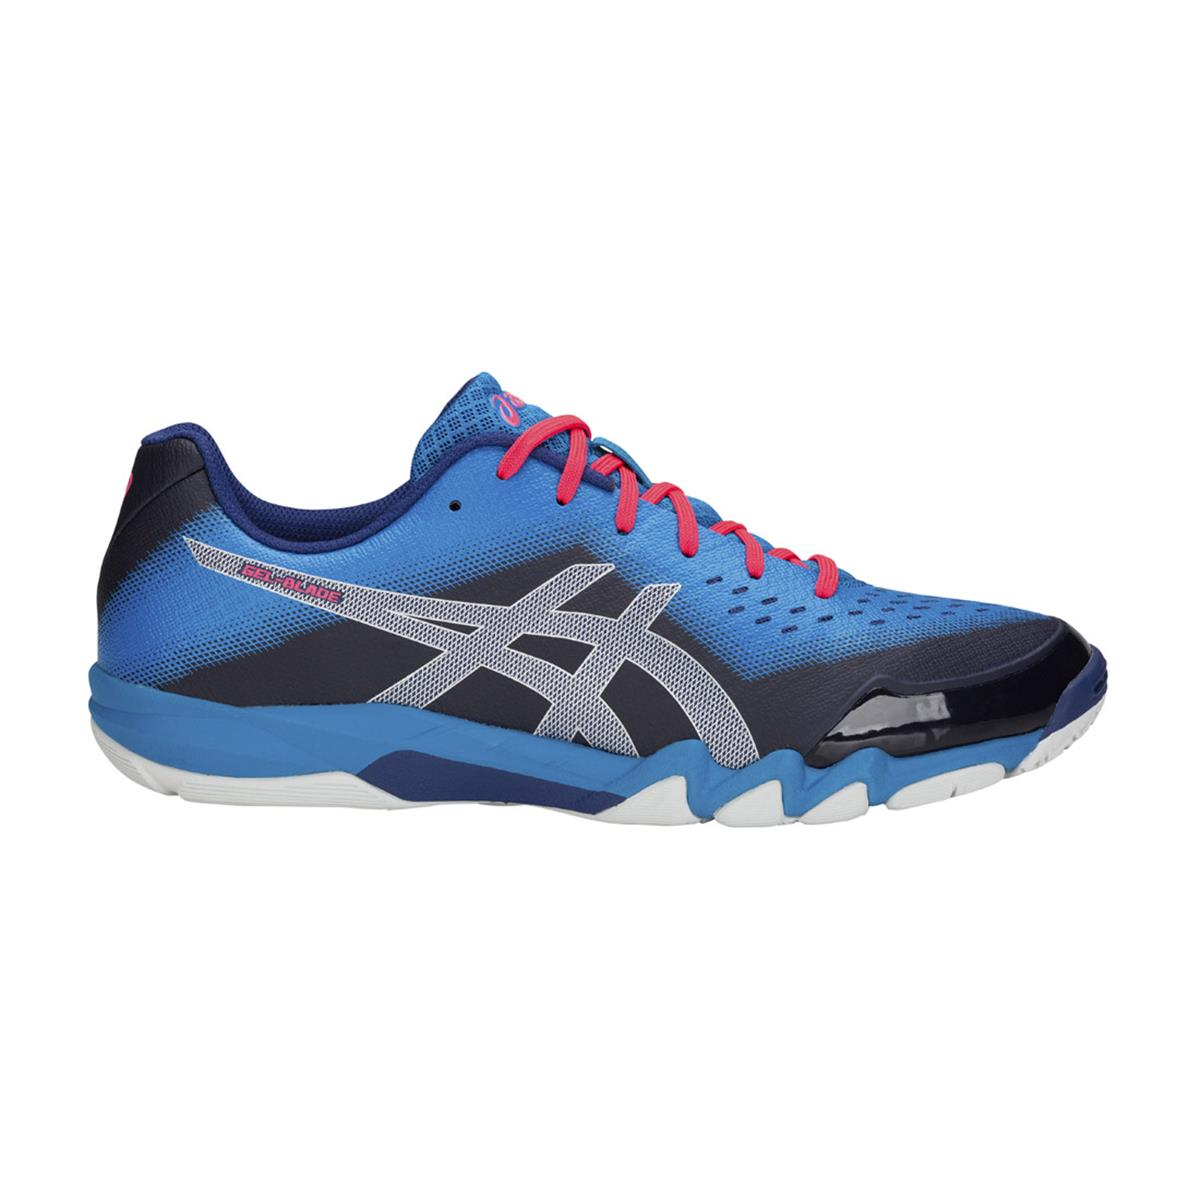 Asics Gel Blade 6 Court Shoes (Blue Print-Silver)  770bf78360259